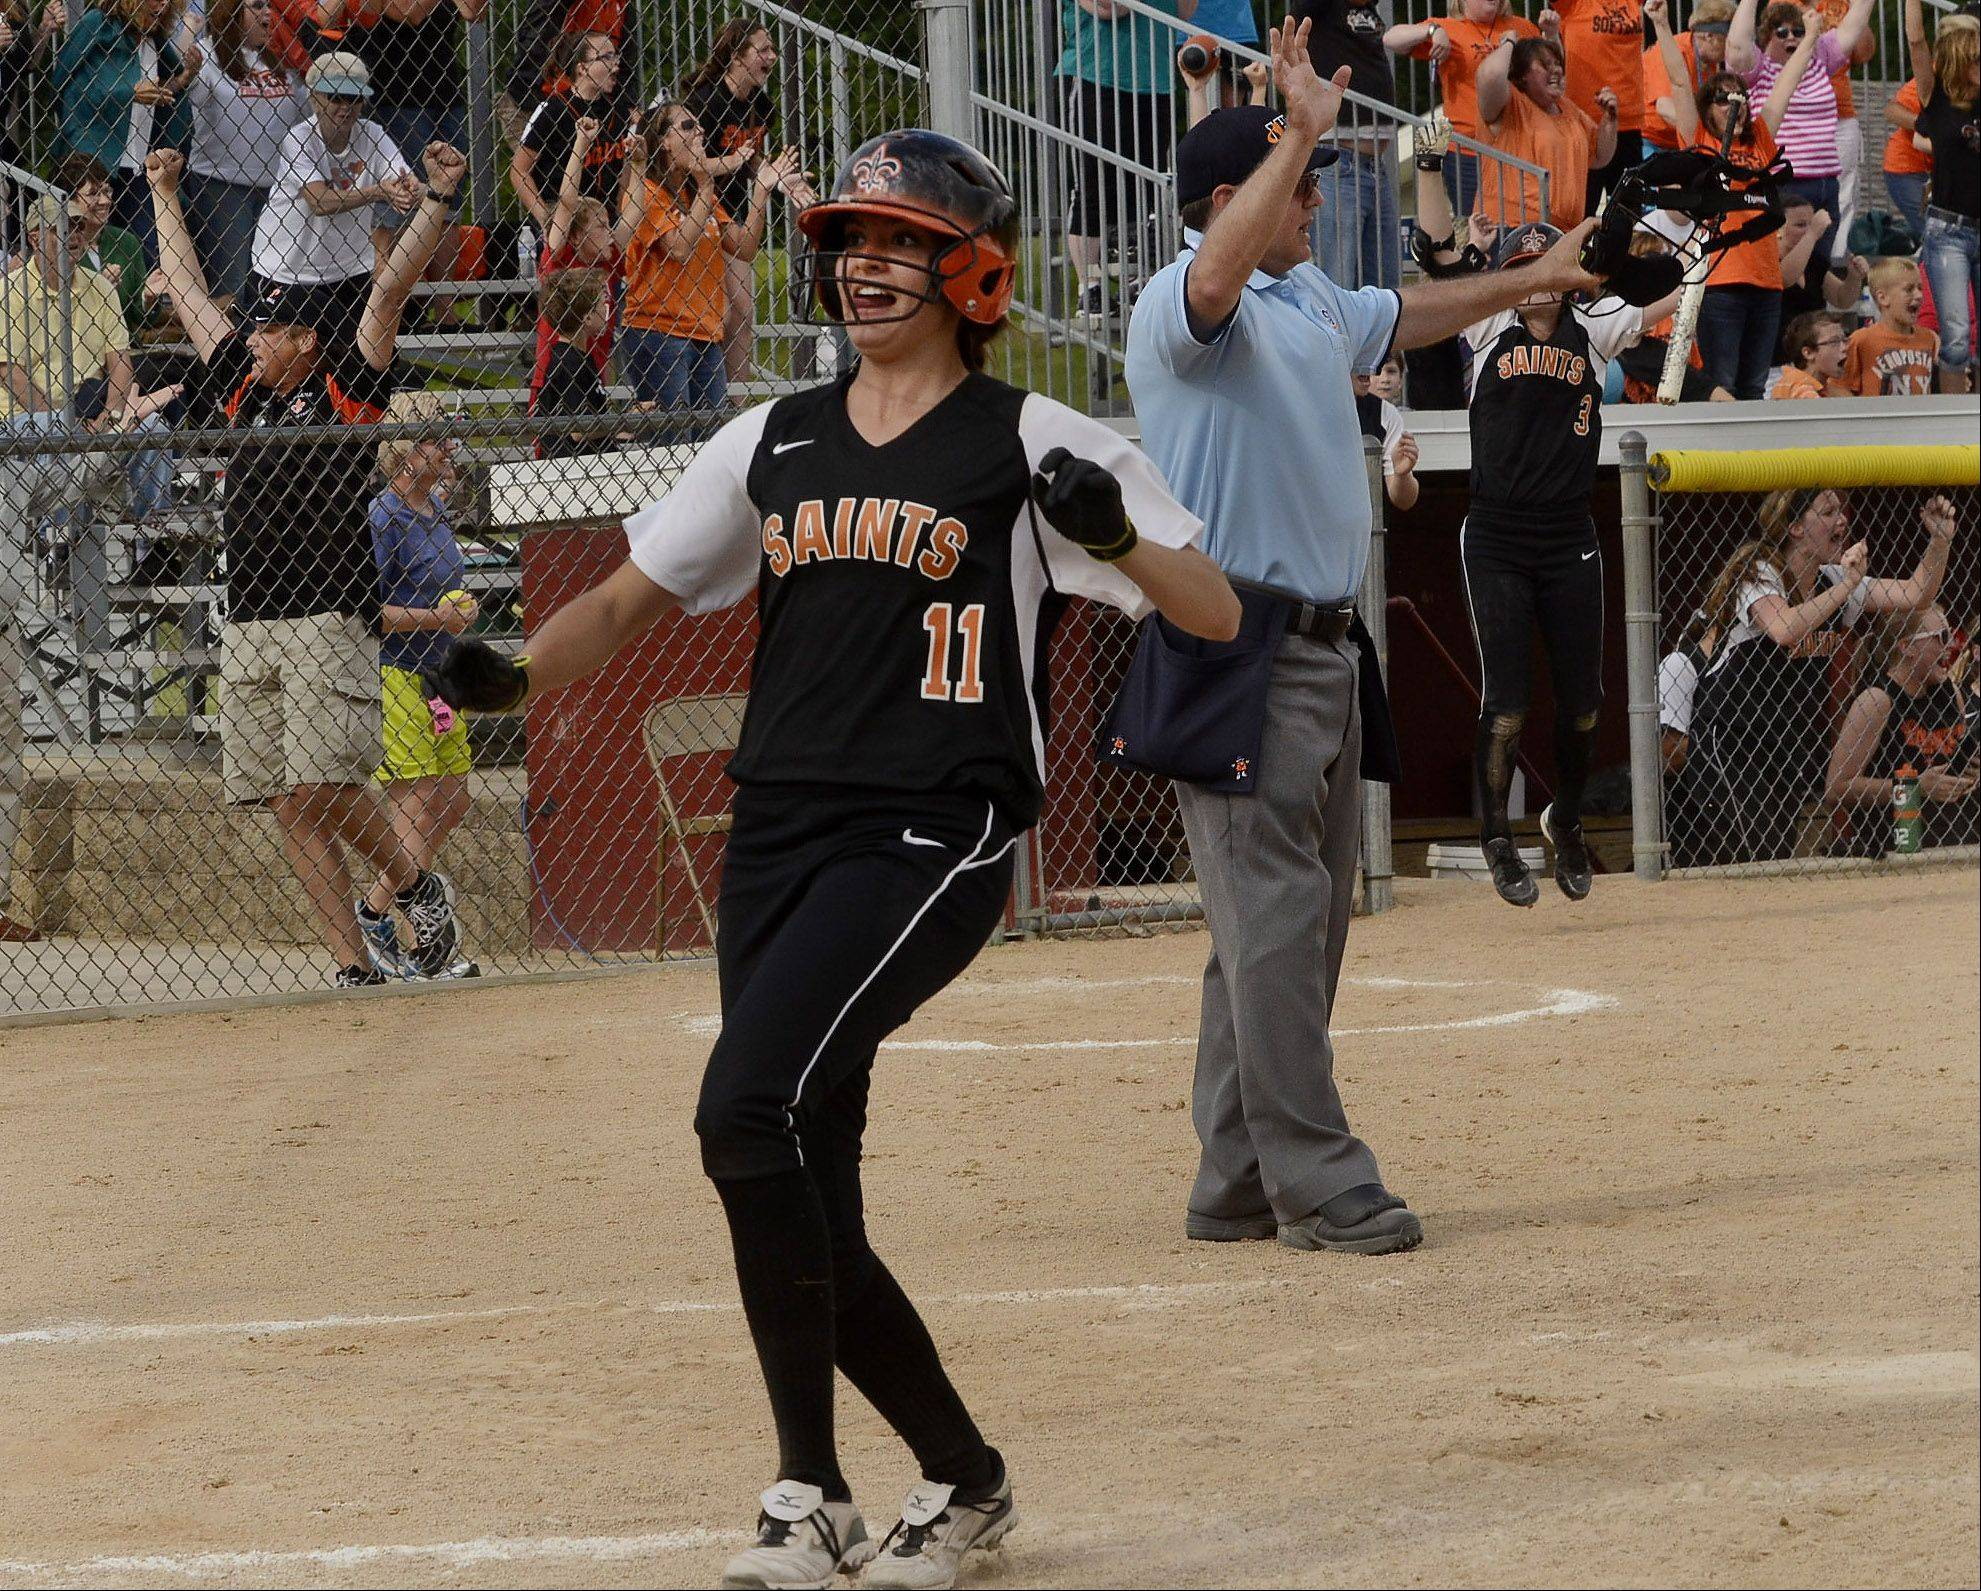 Tess Hupe of St. Charles East scores the game winning run in the bottom of the seventh inning on a 2-run double by Olivia Lorenzini in the Class 4A state semifinals.